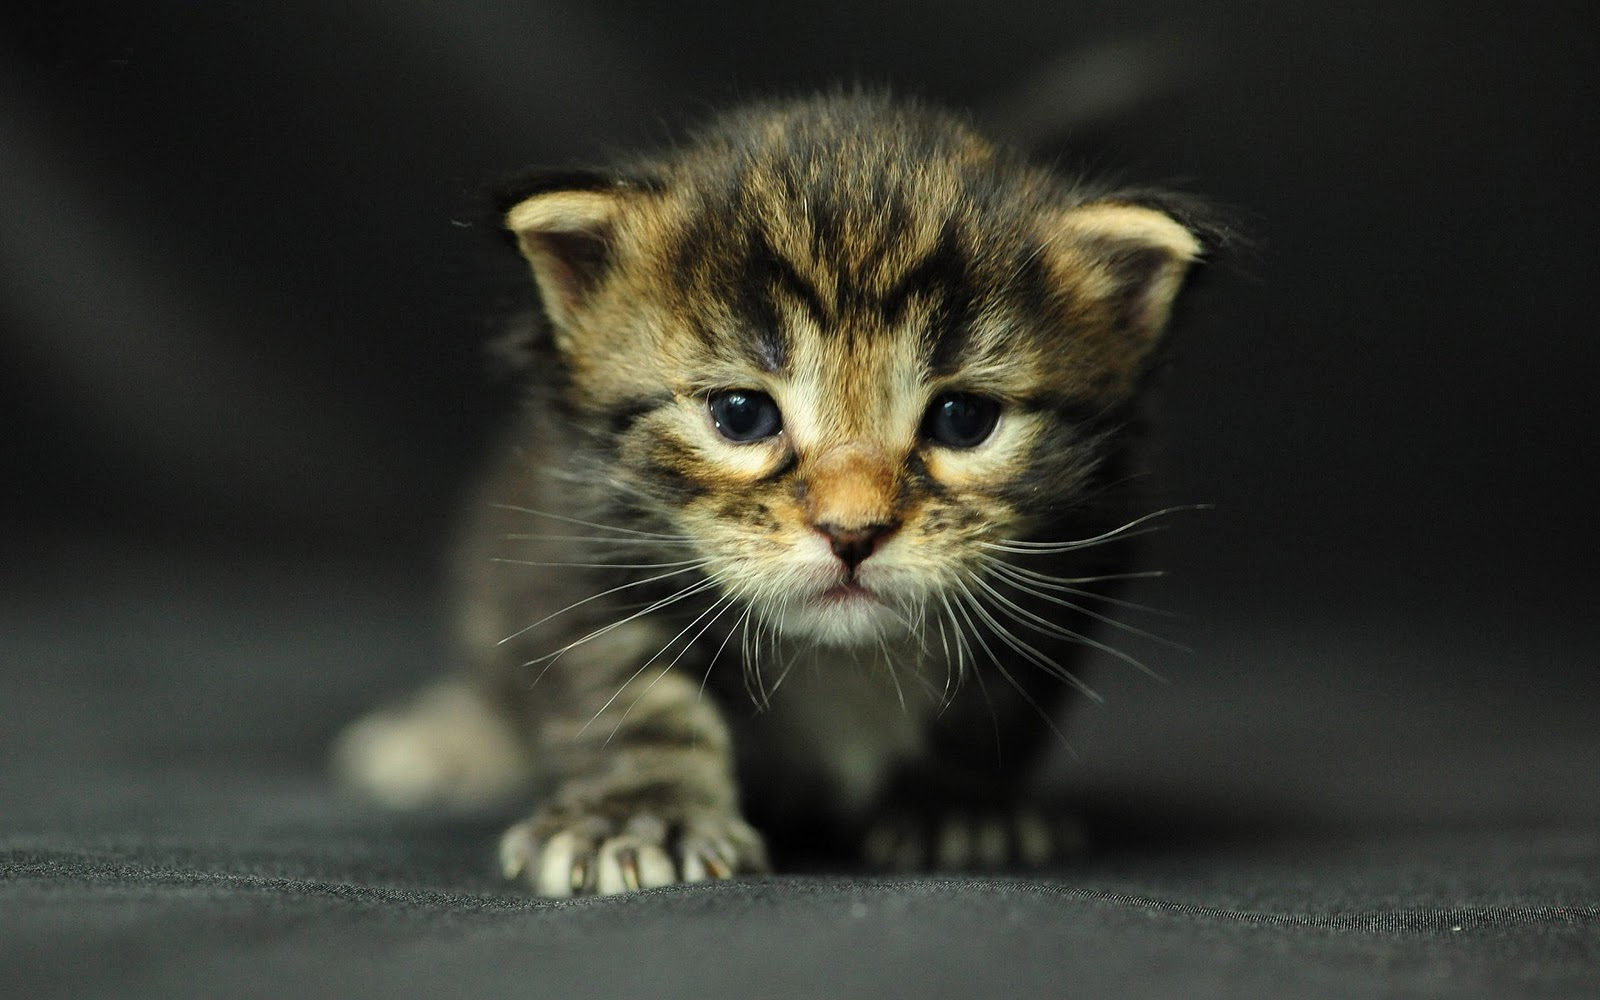 Hd kitten wallpaper wallpapersafari - Kitten wallpaper hd ...